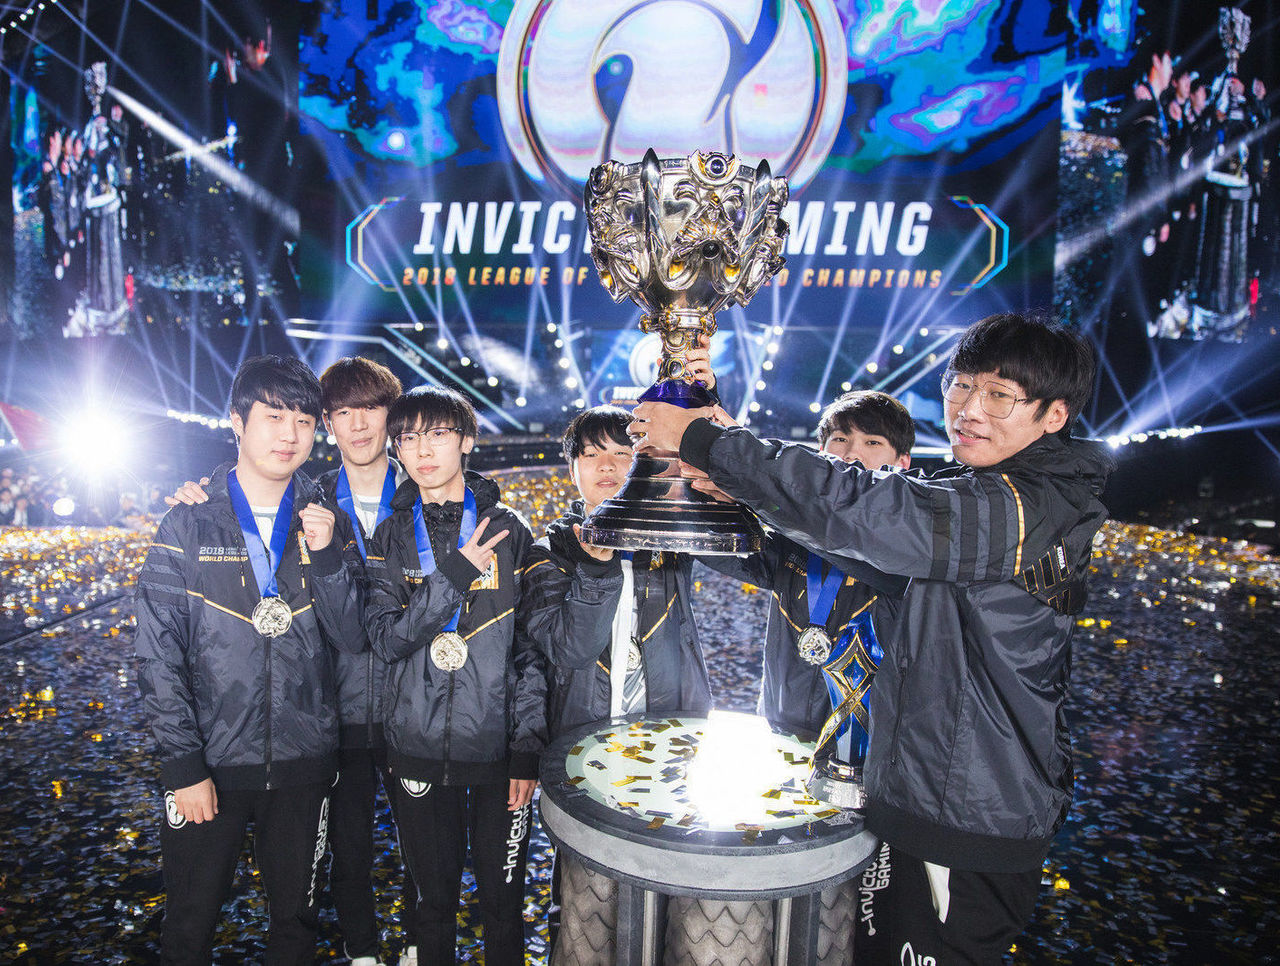 theScore esports Daily (Nov. 5): Invictus Gaming sweep Fnatic to win Worlds, Na'Vi victorious at BLAST and South Korea win third consecutive Overwatch World Cup